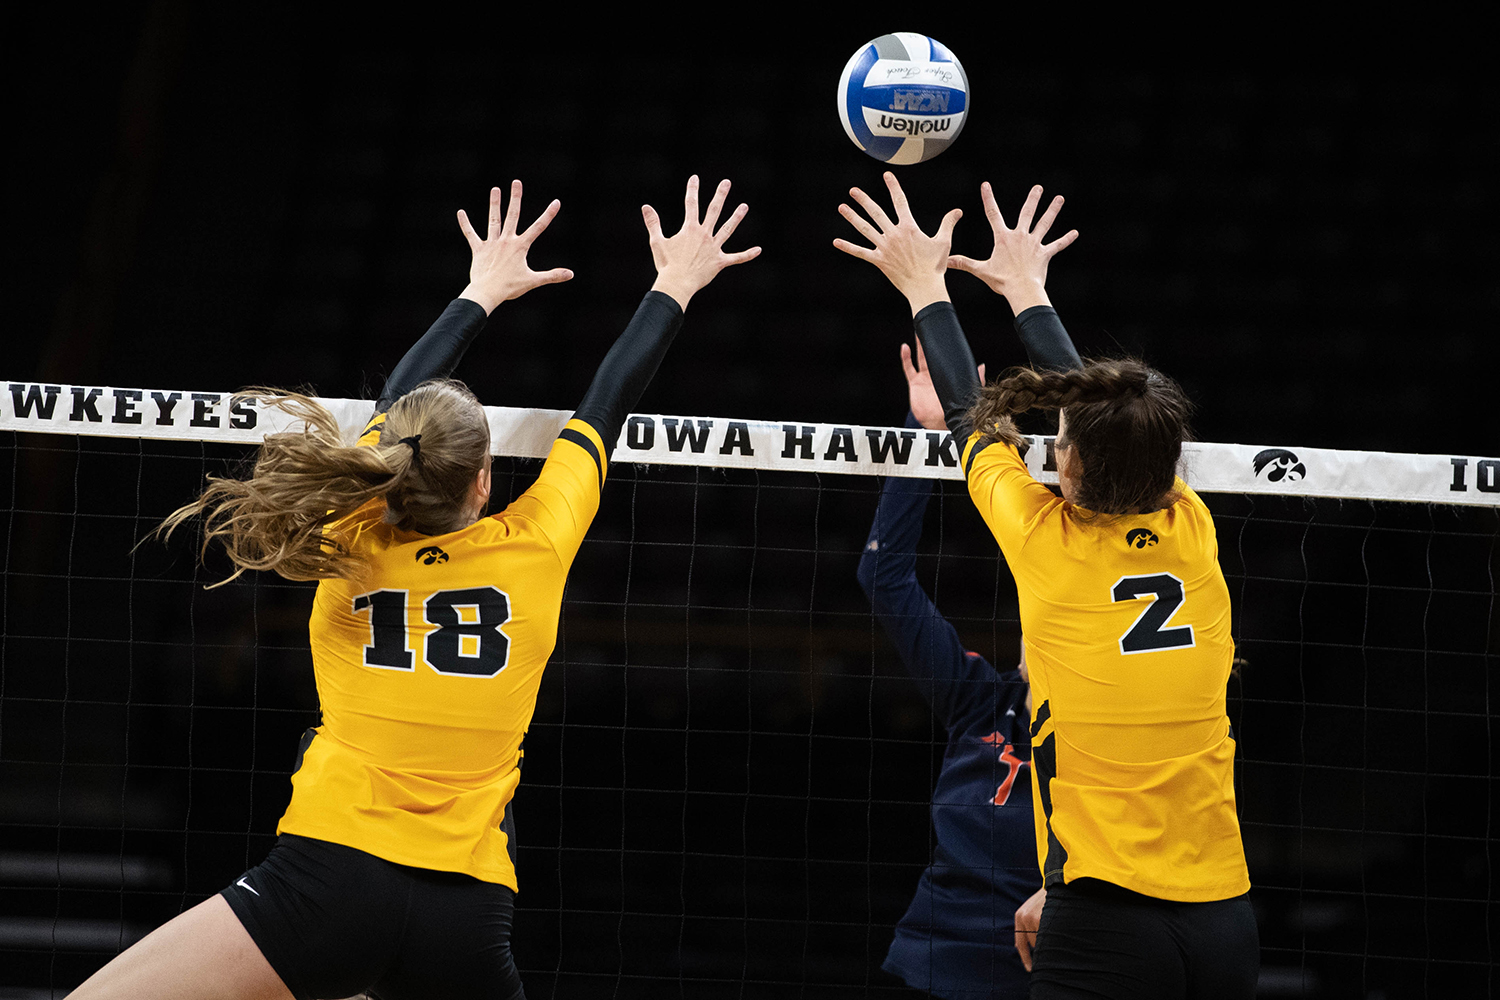 Iowa's Hannah Clayton (18) and Courtney Buzzerio block a spike during a match against the University of Illinois on Wednesday, Nov. 6, 2019. The Hawkeyes lost to the Fighting Illini, who won 3-0. Clayton led the Hawkeyes in blocks with four blocks.